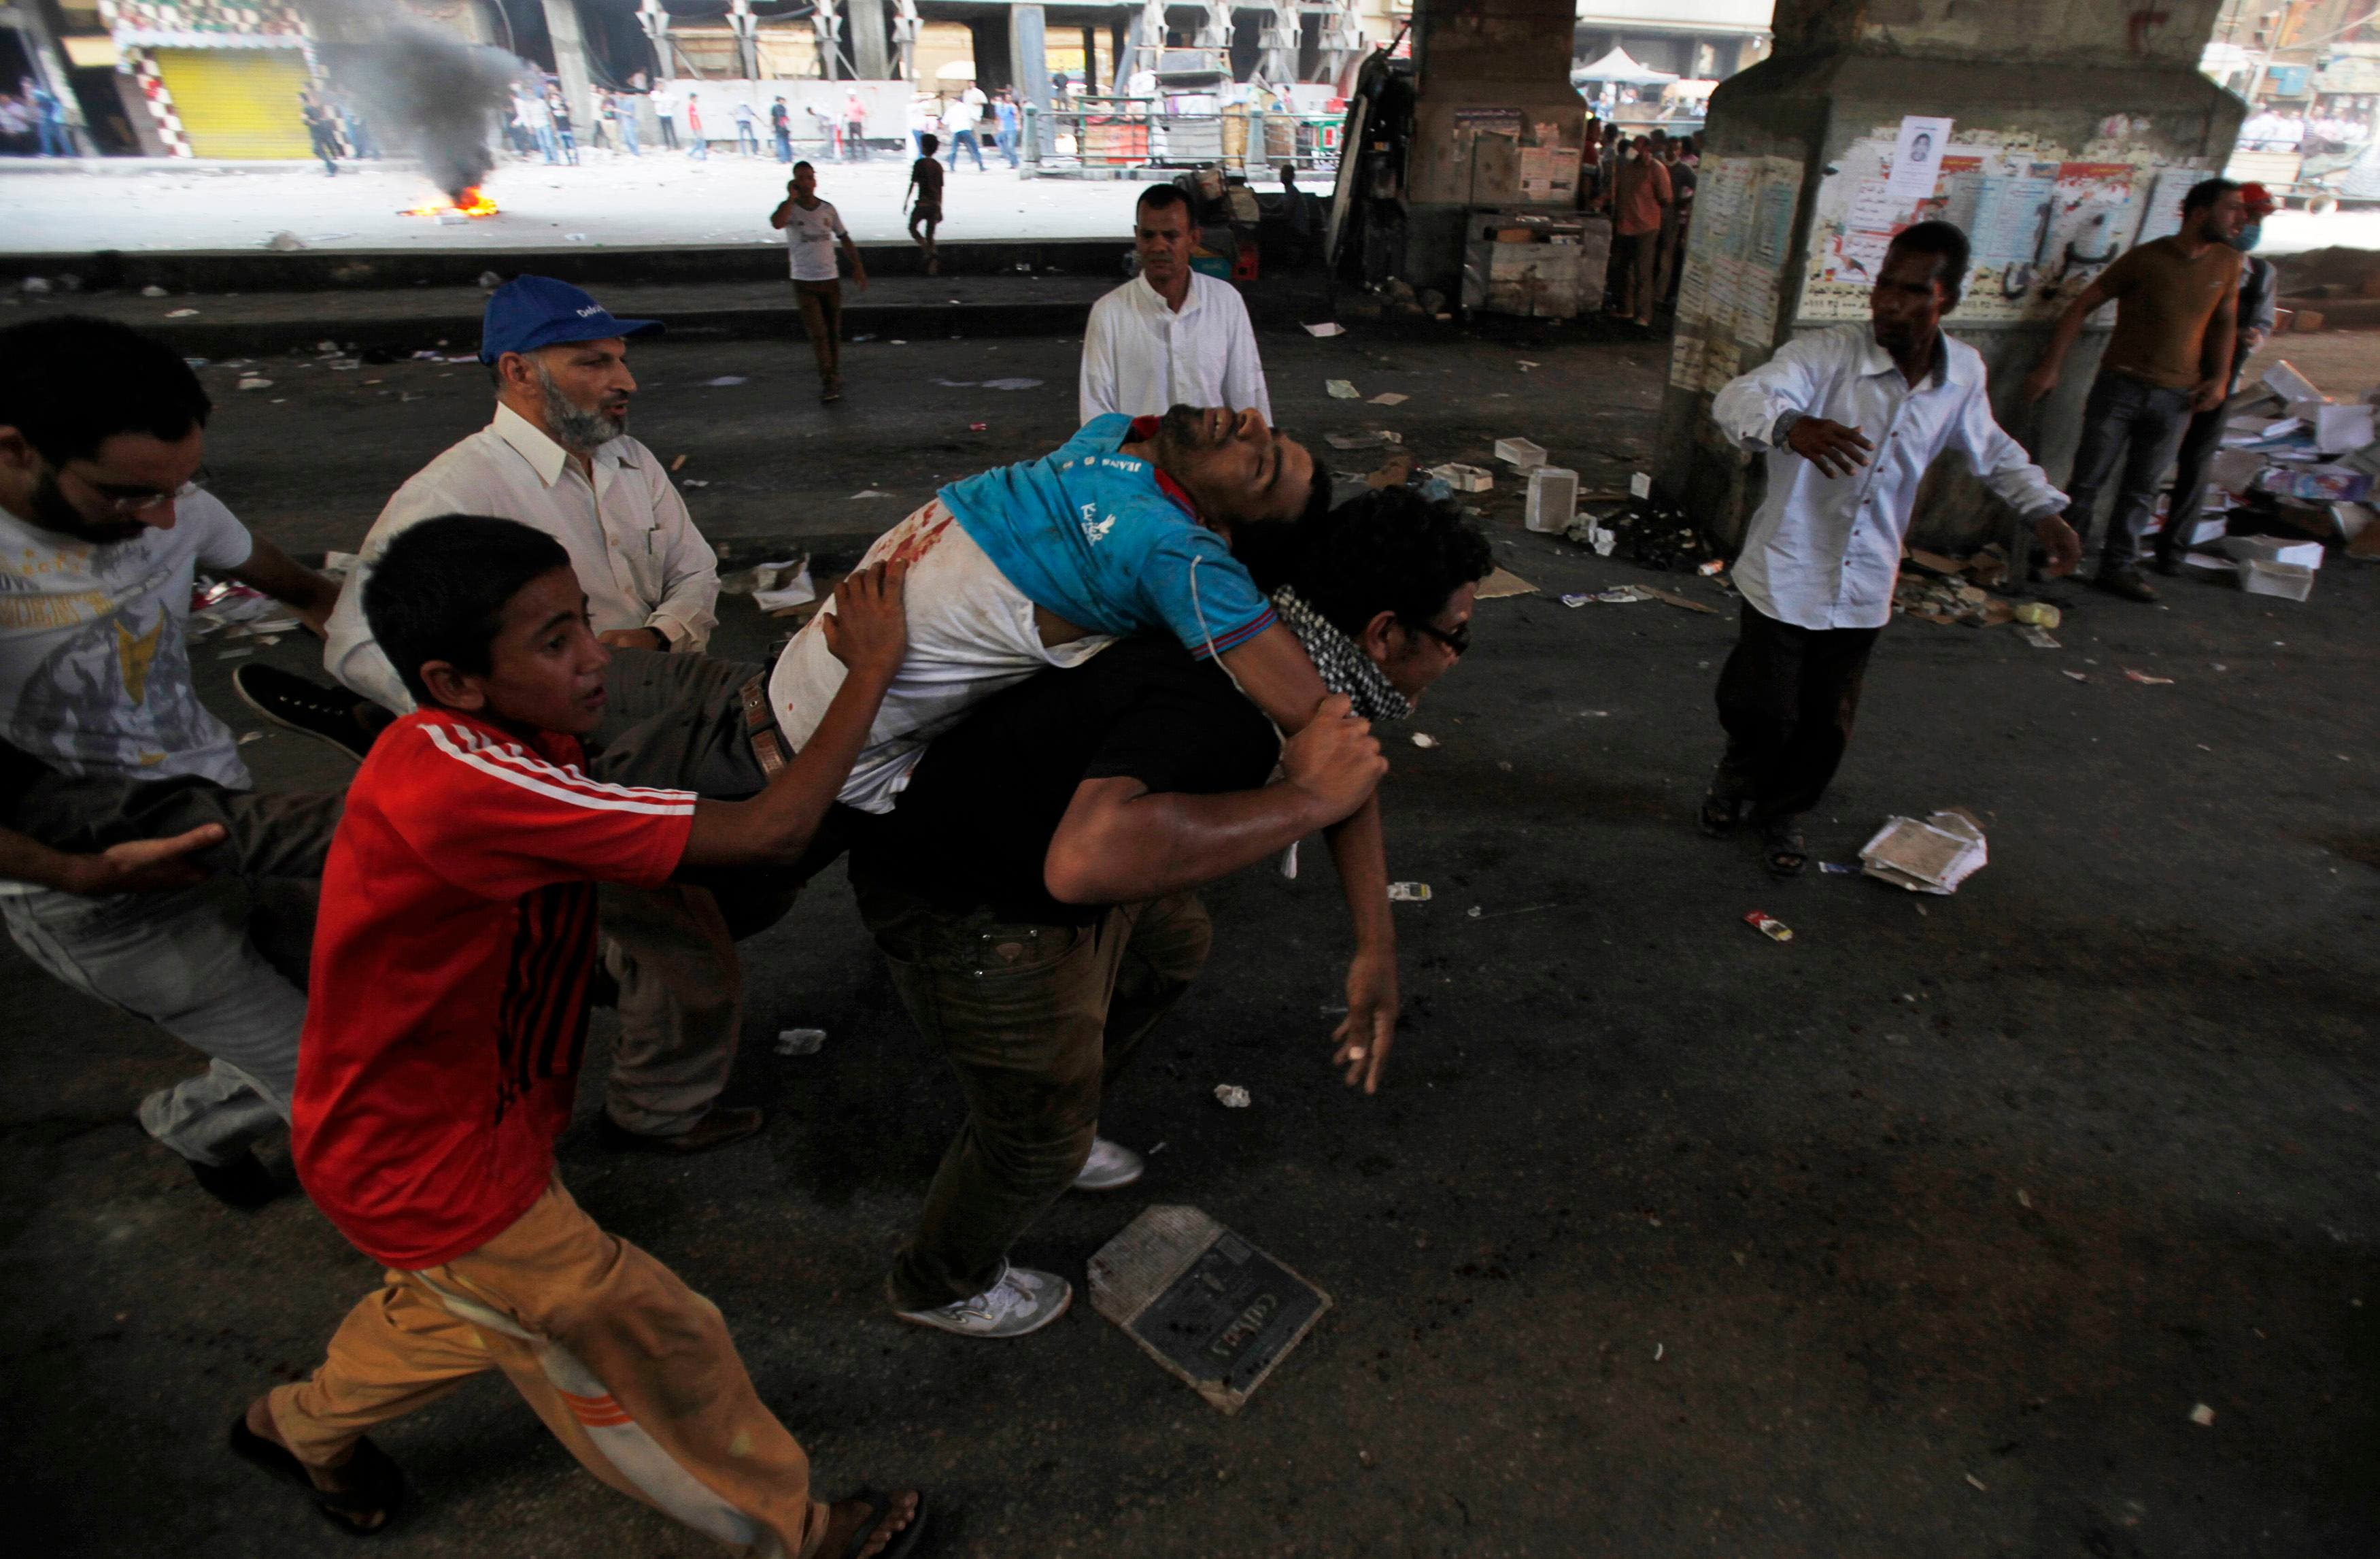 Supporters of deposed Egyptian President Mohamed Mursi carry an injured demonstrator who was shot during clashes in front Azbkya police station at Ramses Square in Cairo, August 16, 2013. (AFP)